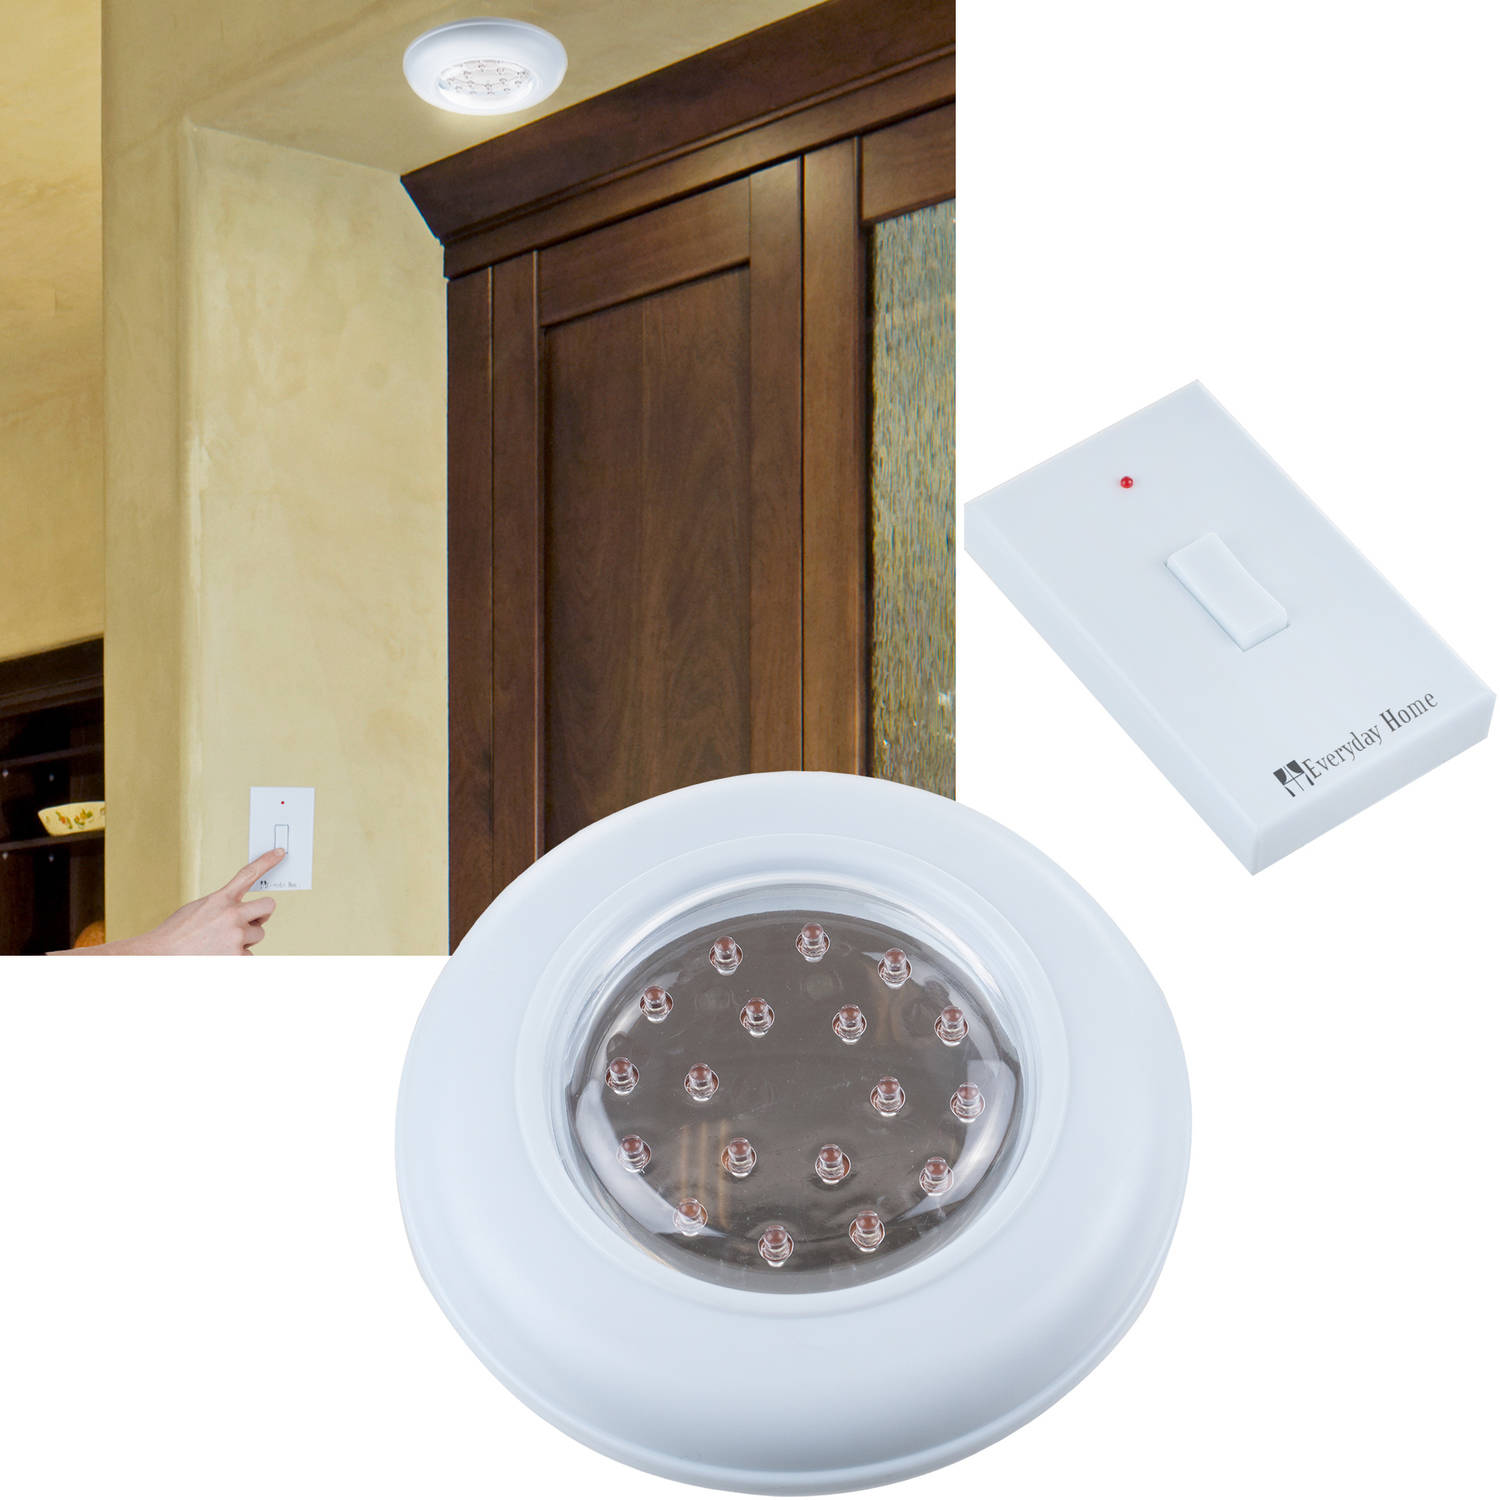 Remote Control Wall Mount cordless ceiling/wall light with remote control light switch